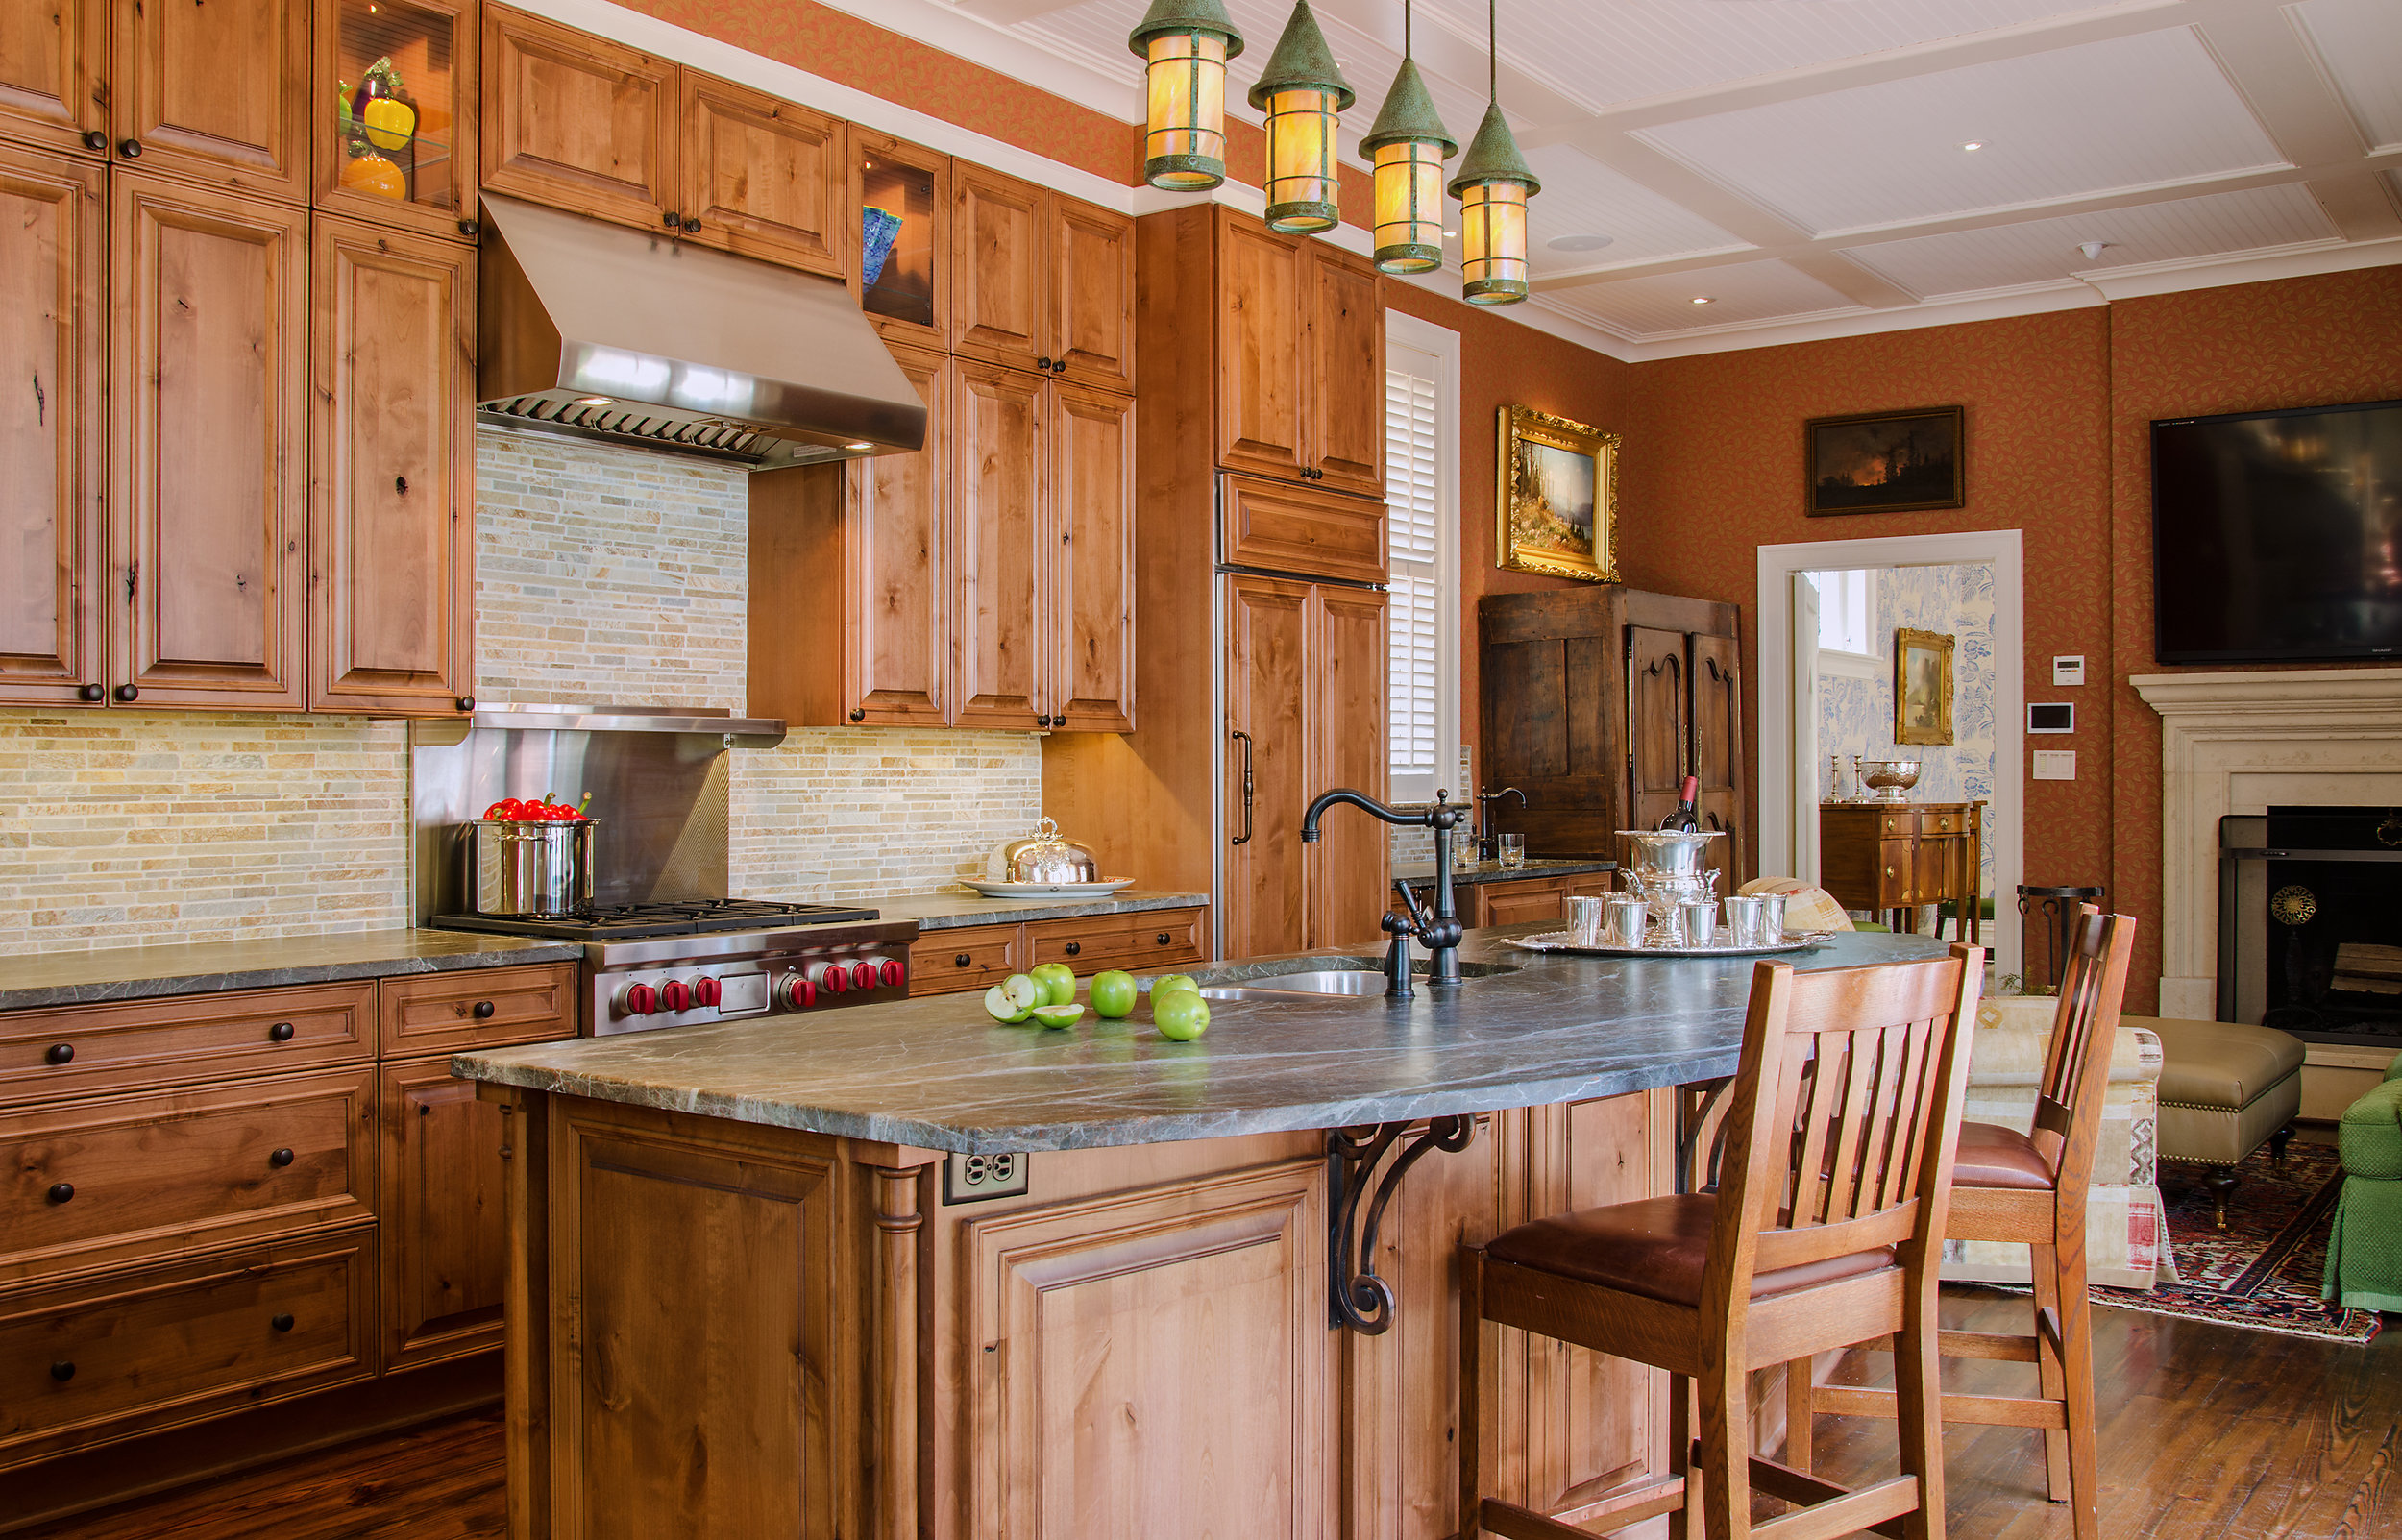 Custom-Kitchens-Wheat-Kitchen-52913-Overall-1.jpg